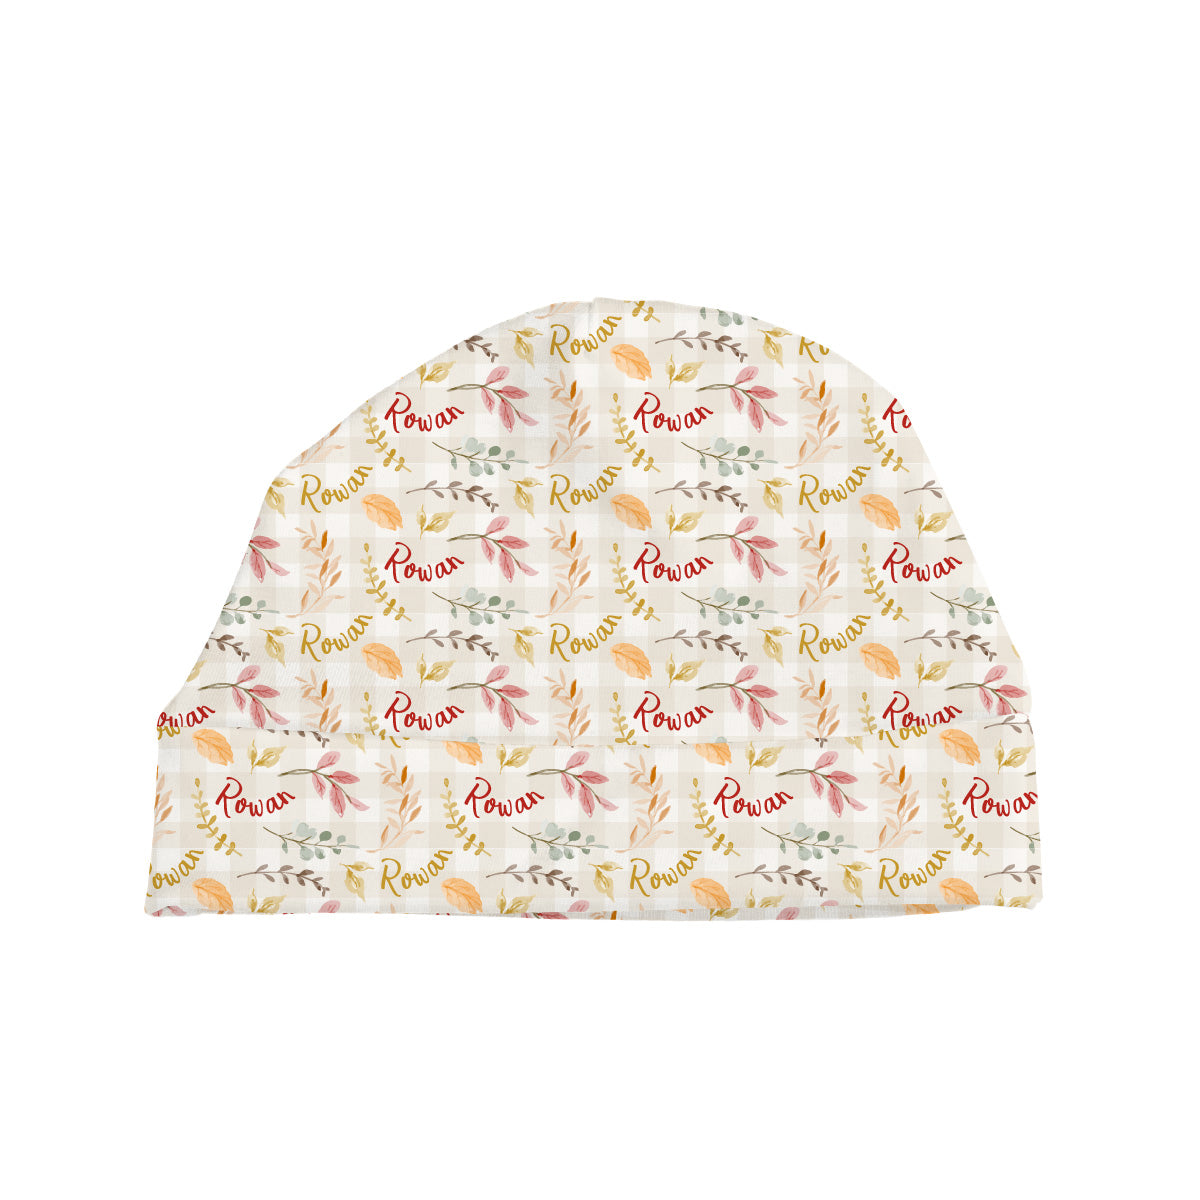 Rowan's Fall Leaves | Baby Hat